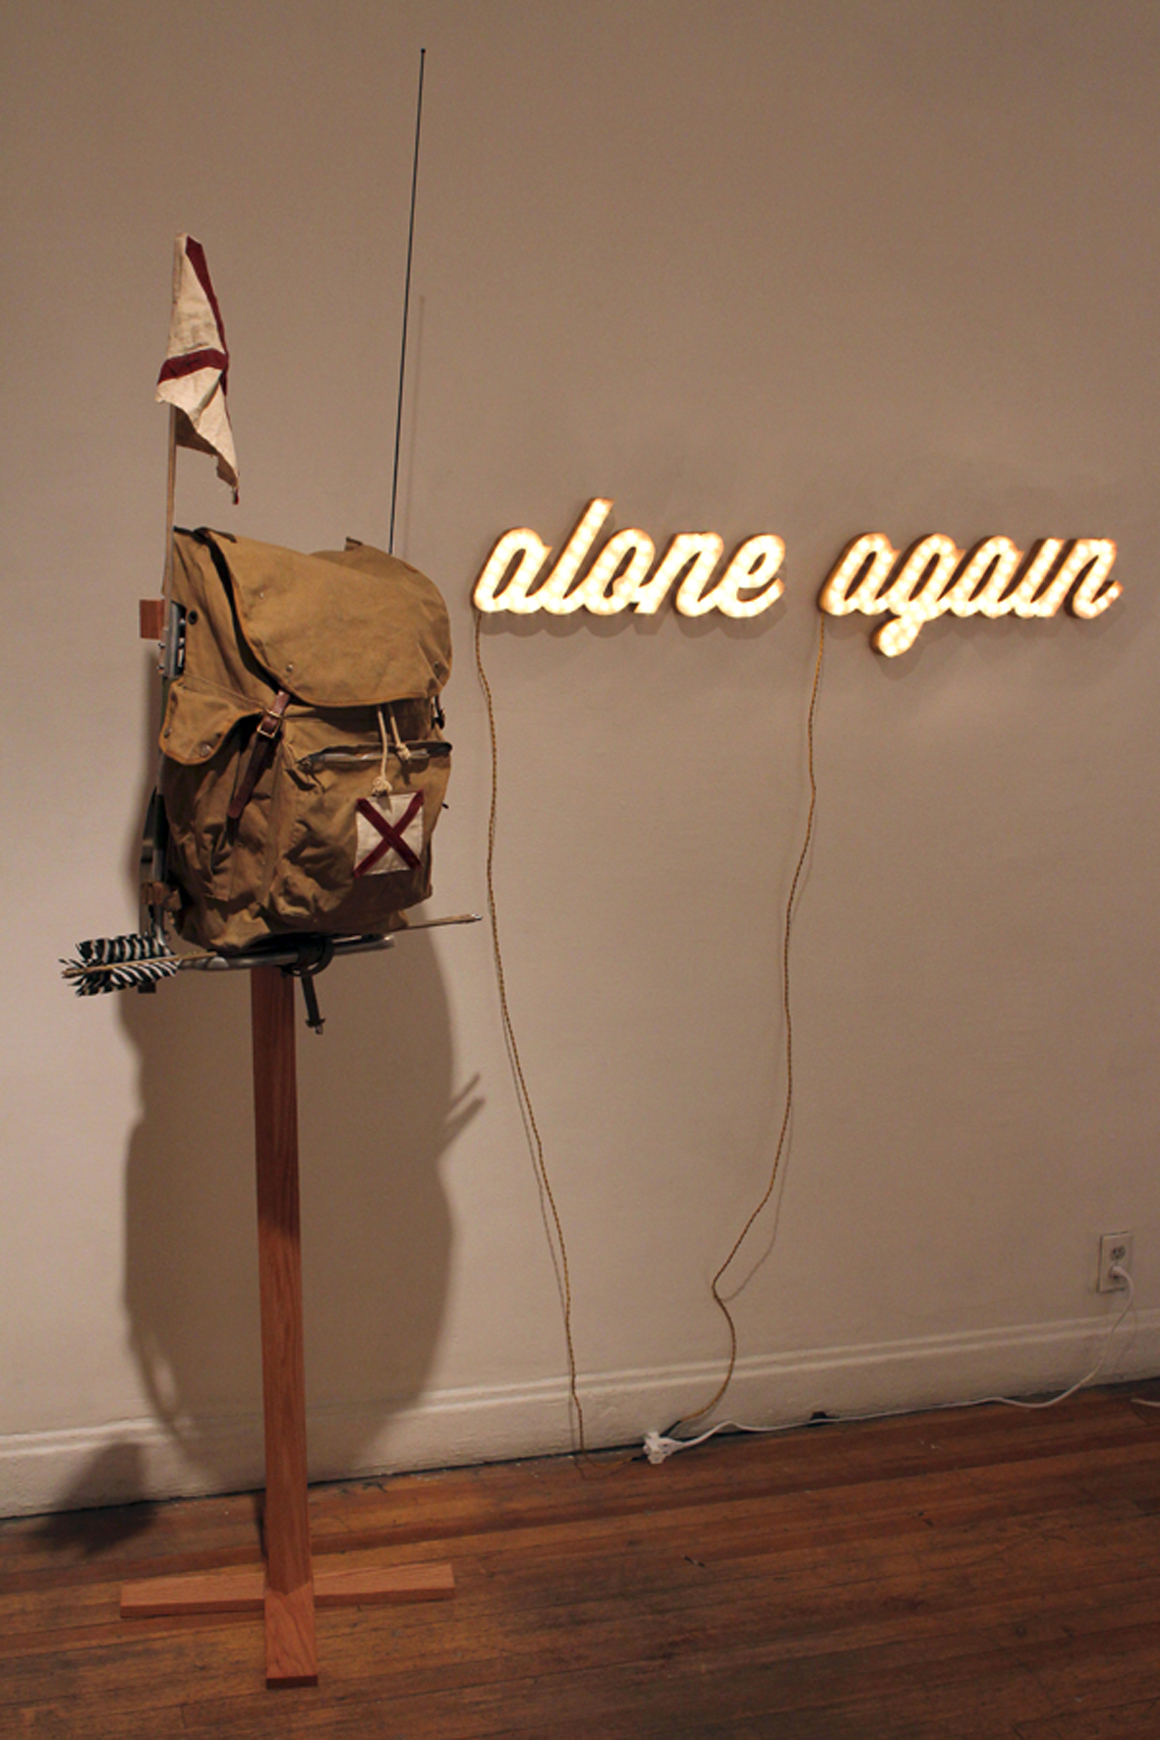 """<p><span class=""""name"""">Ryan Everson</span><br><em>Alone Again (Pack)</em><span class='media'>vintage scout pack, handmade bamboo arrows, radio, canvas patches and flag, oak stand</span>78 x 31 1/2 x 16in<br>2013<br><a class='inquire' href='mailto:info@gildargallery.com?subject=Artwork Inquiry REVE0006&body=I am interested in finding out more about Alone Again (Pack) by Ryan Everson'>Inquire</a></p>"""